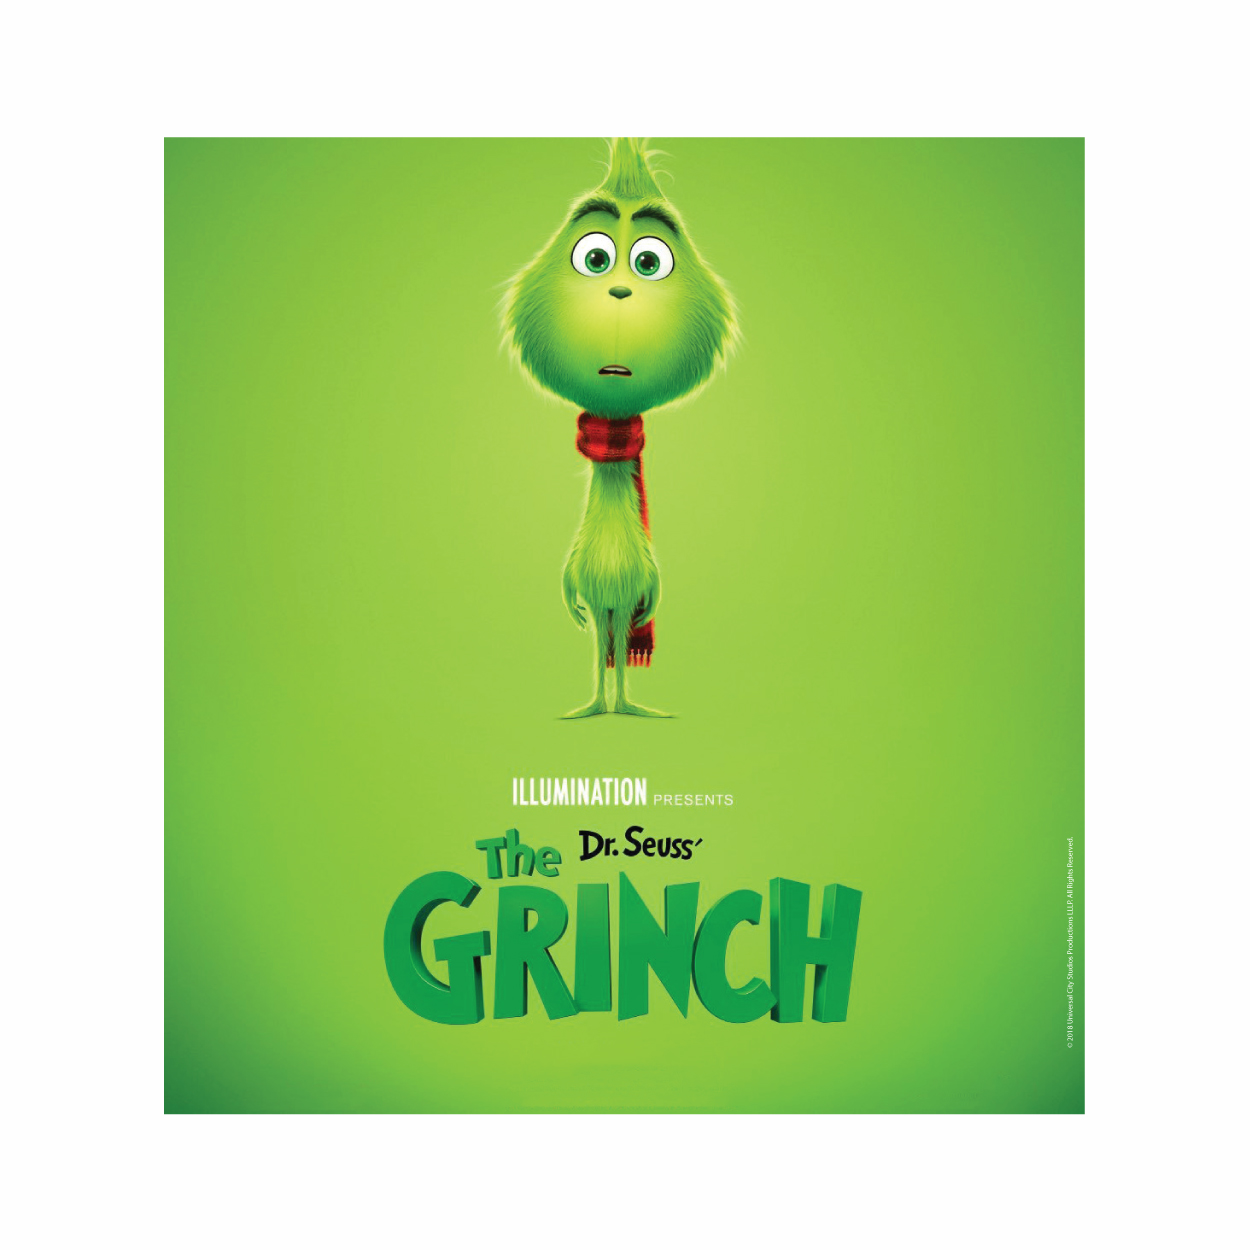 grinch movie graphic